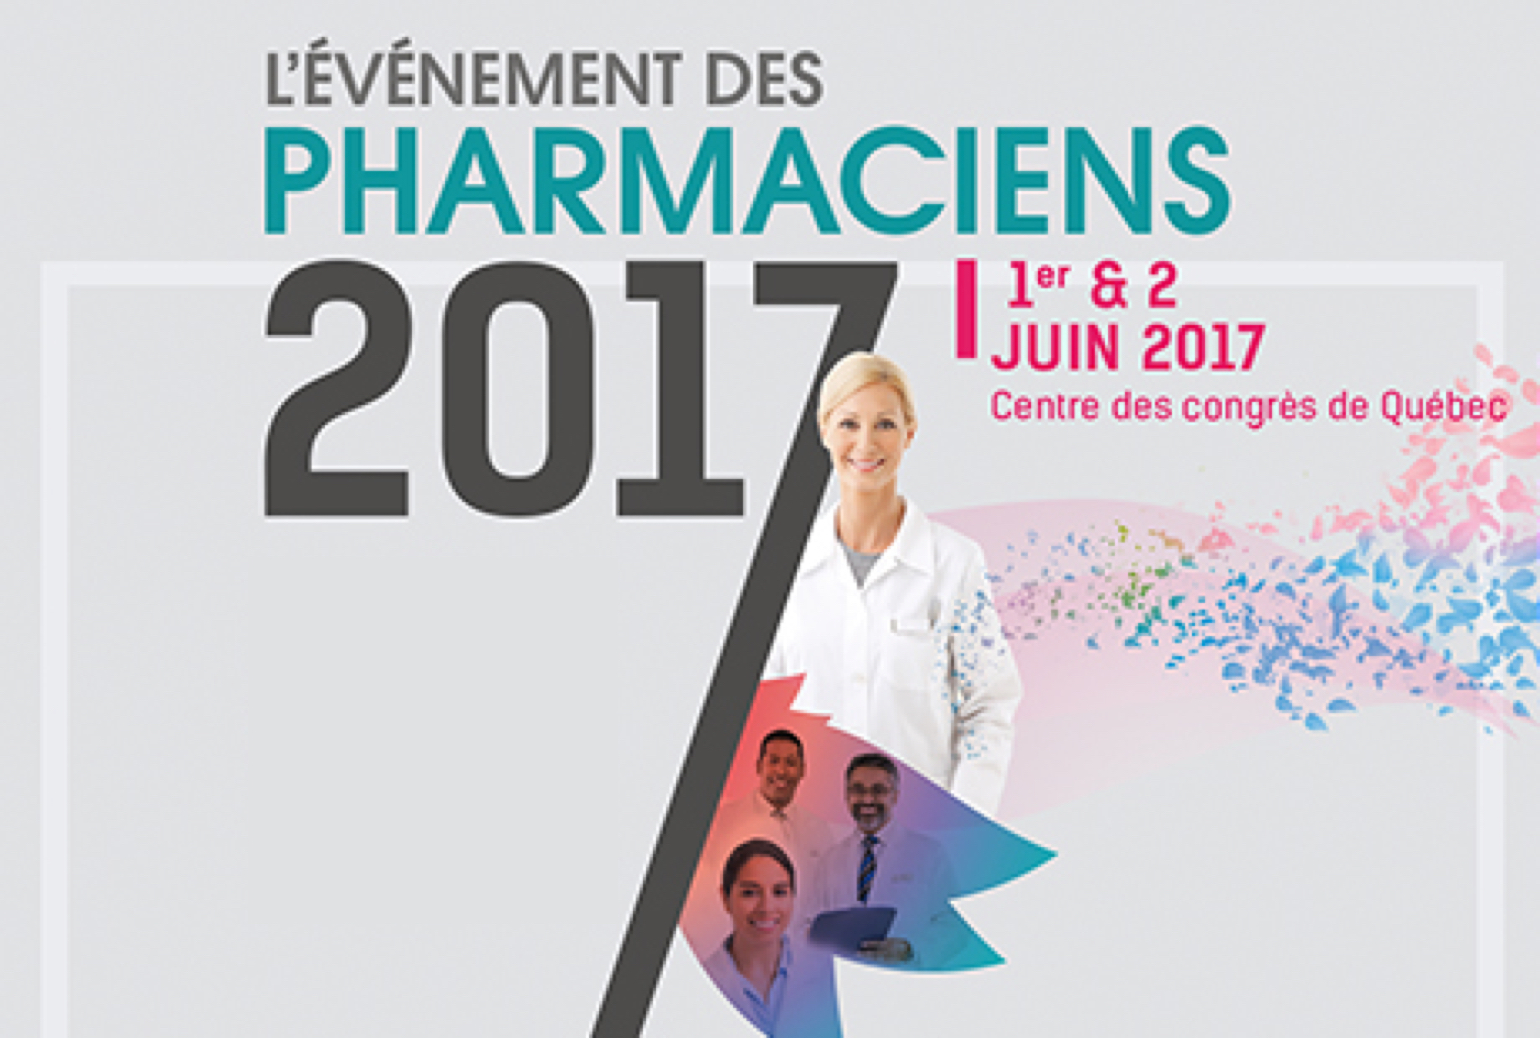 Evenement Pharmaciens@2X